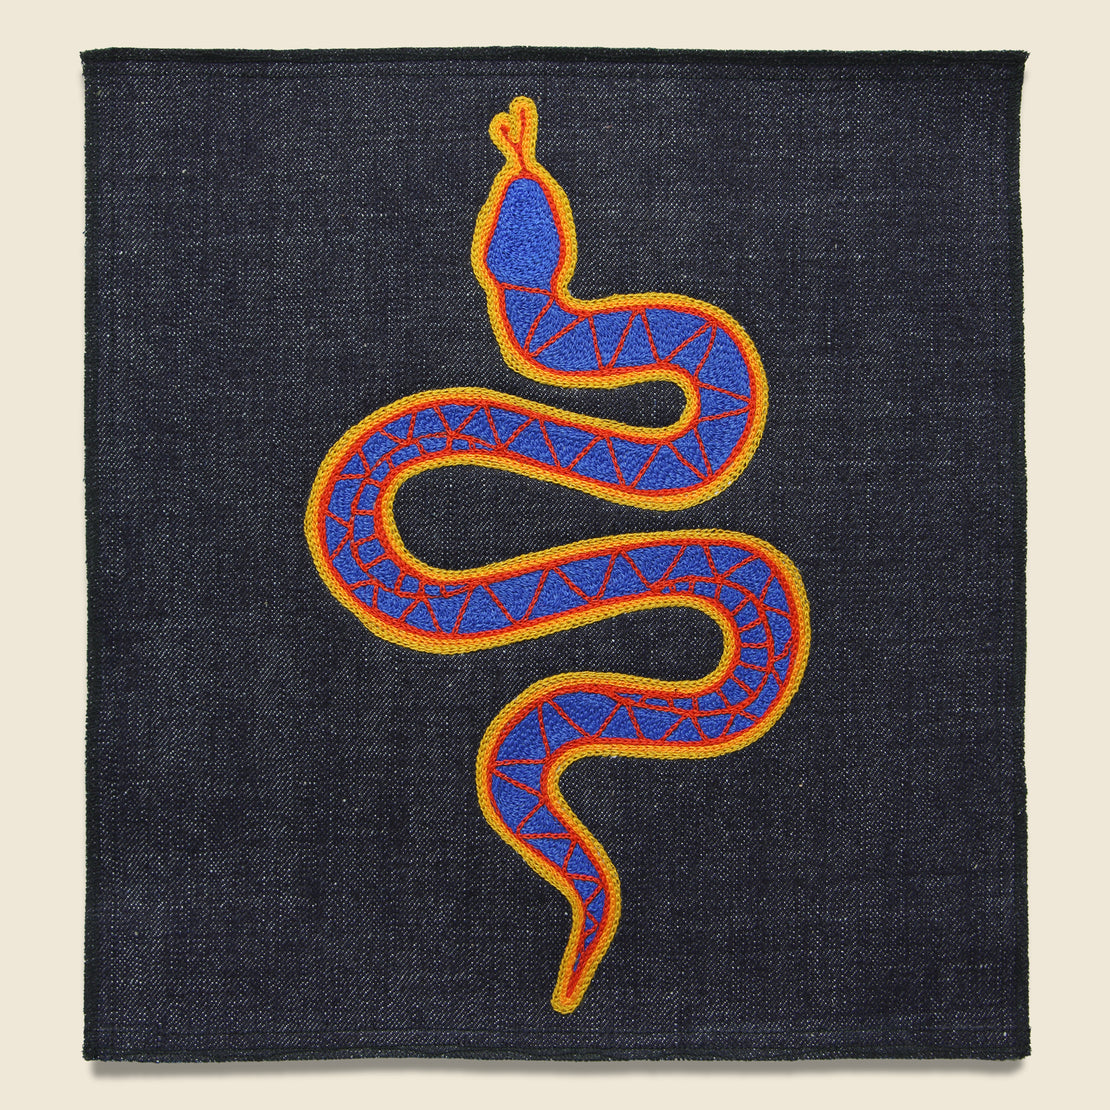 Fort Lonesome Large Direct Stitch Embroidery - Snake